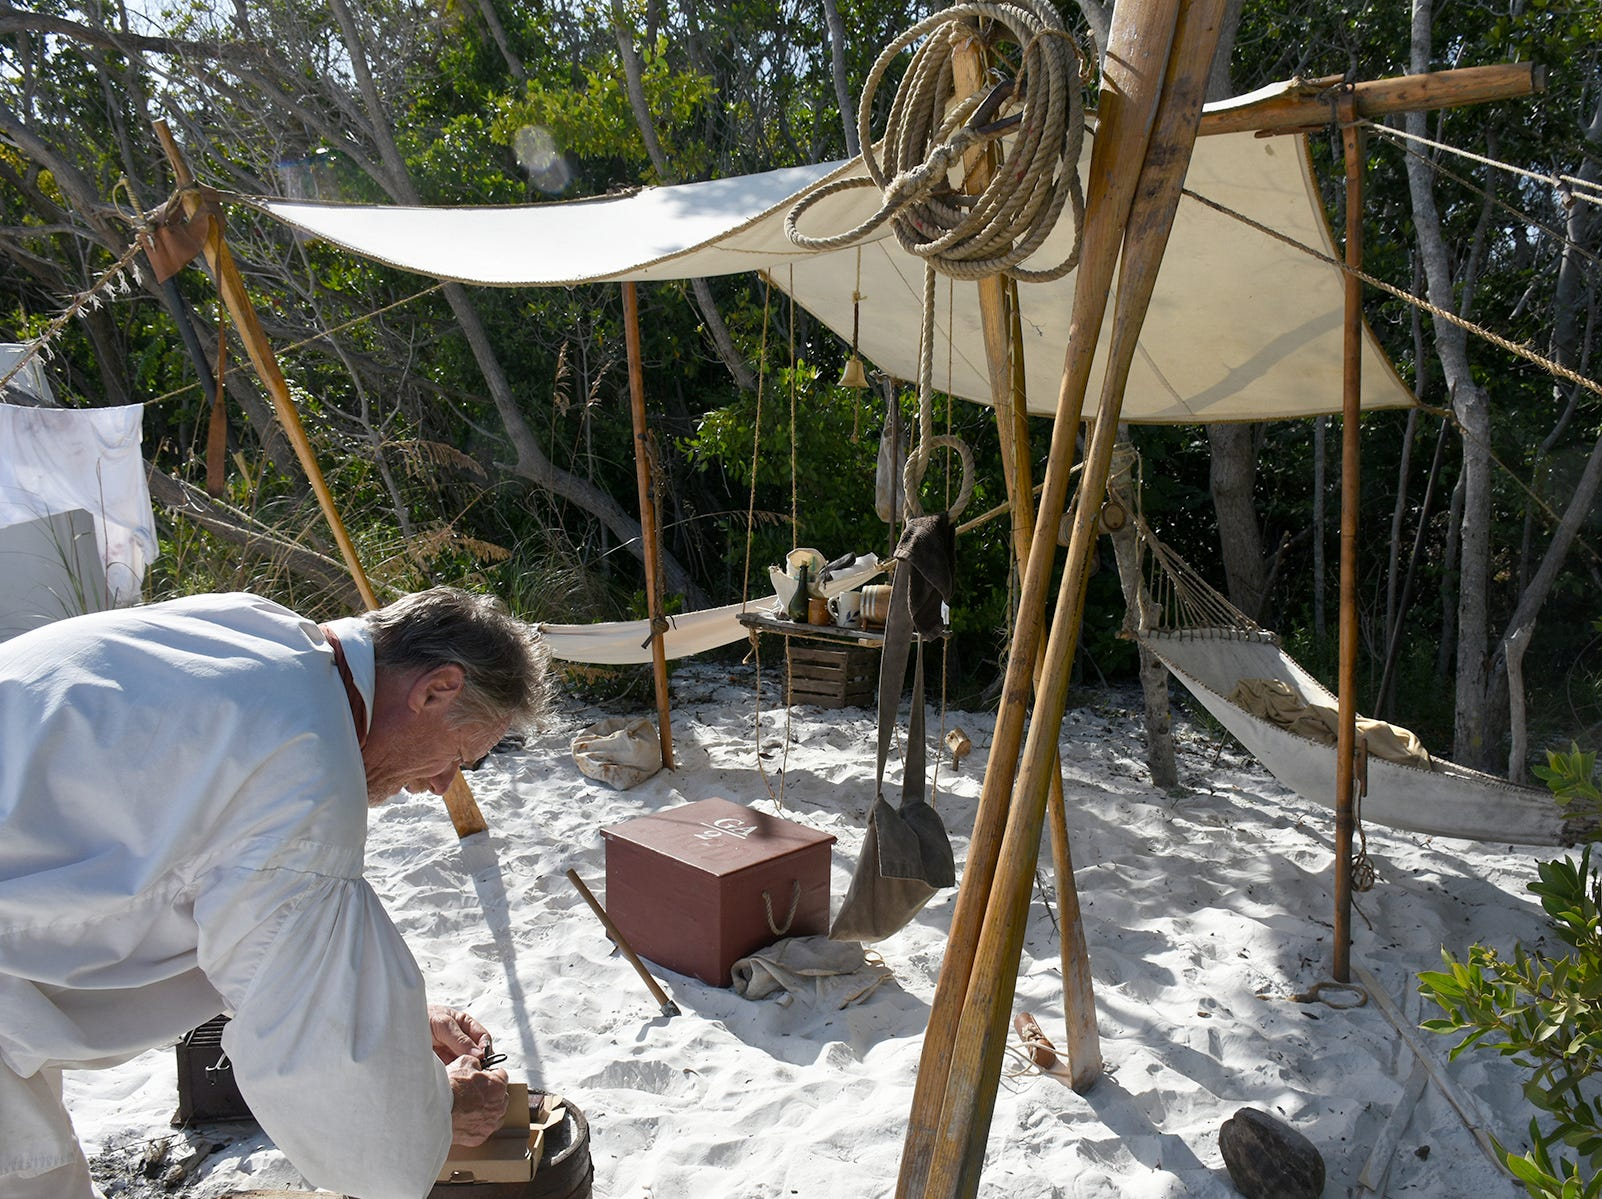 Bob Cefrino tends to his period-authentic campsite, with nothing modern (except a cell phone and car keys stashed away). A group of historical reenactors dedicated to living the life of 18th century swashbucklers set up a pirate camp on Kice Island over the weekend.